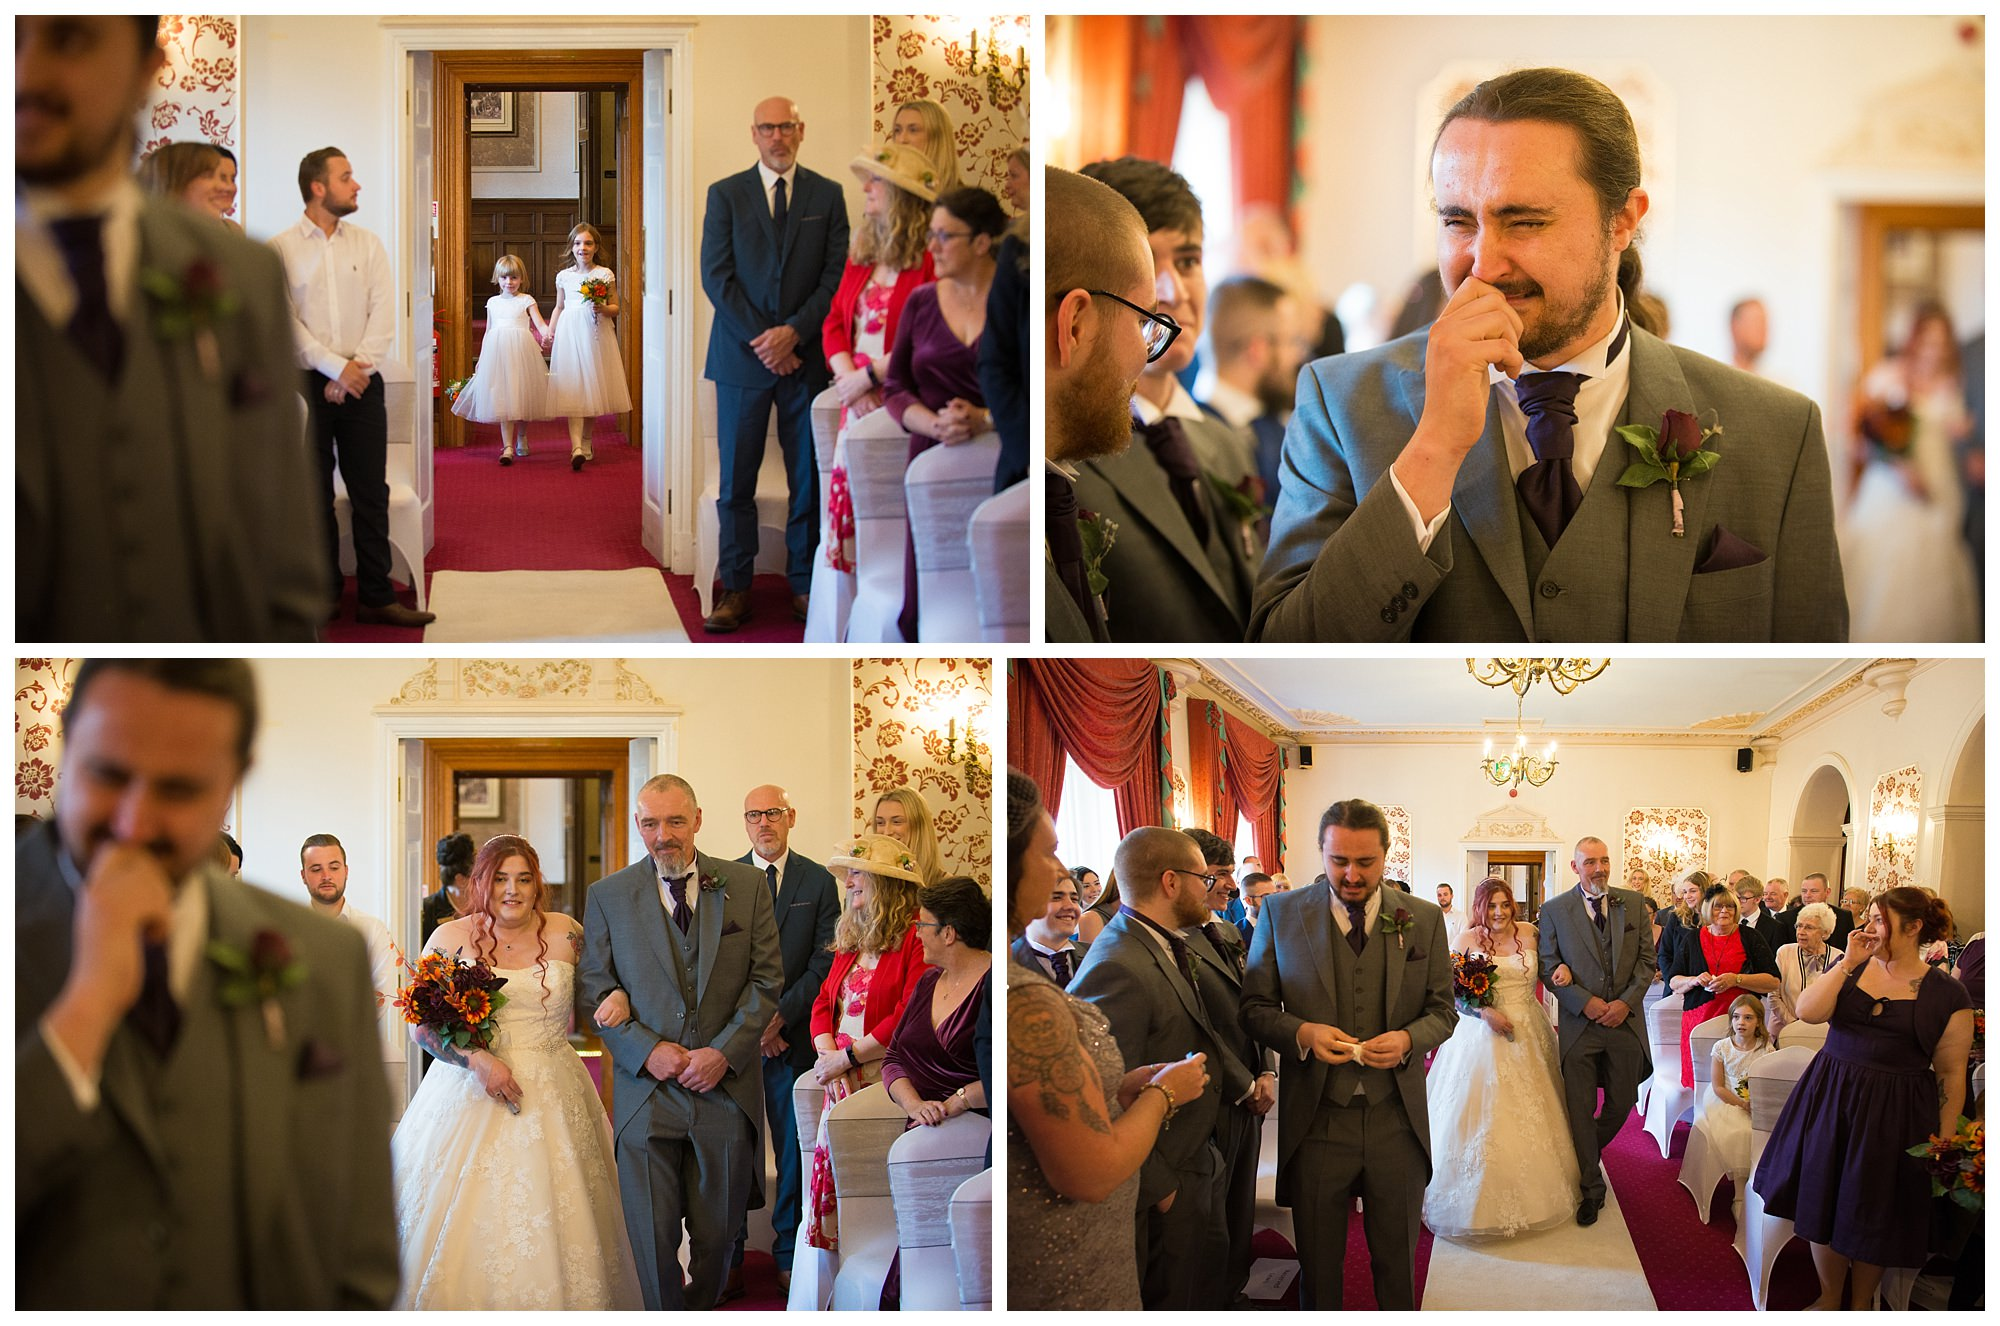 Bagden-Hall-Wedding-Photography_0015